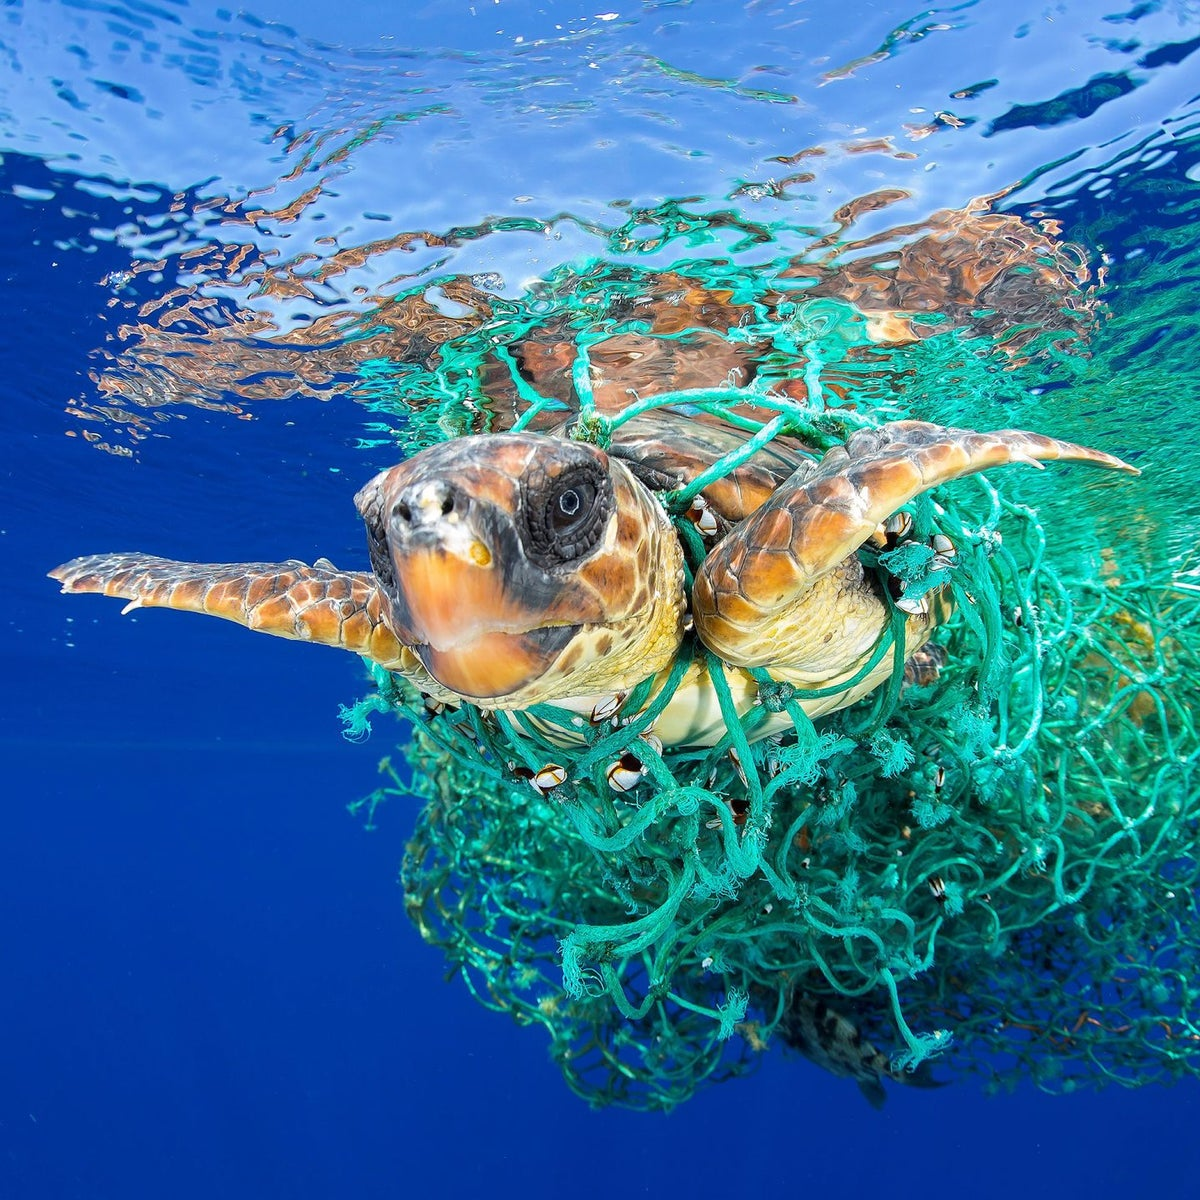 Nature, first prize singles - A sea turtle entangled in a fishing net swims off the coast of Tenerife, Canary Islands, Spain.